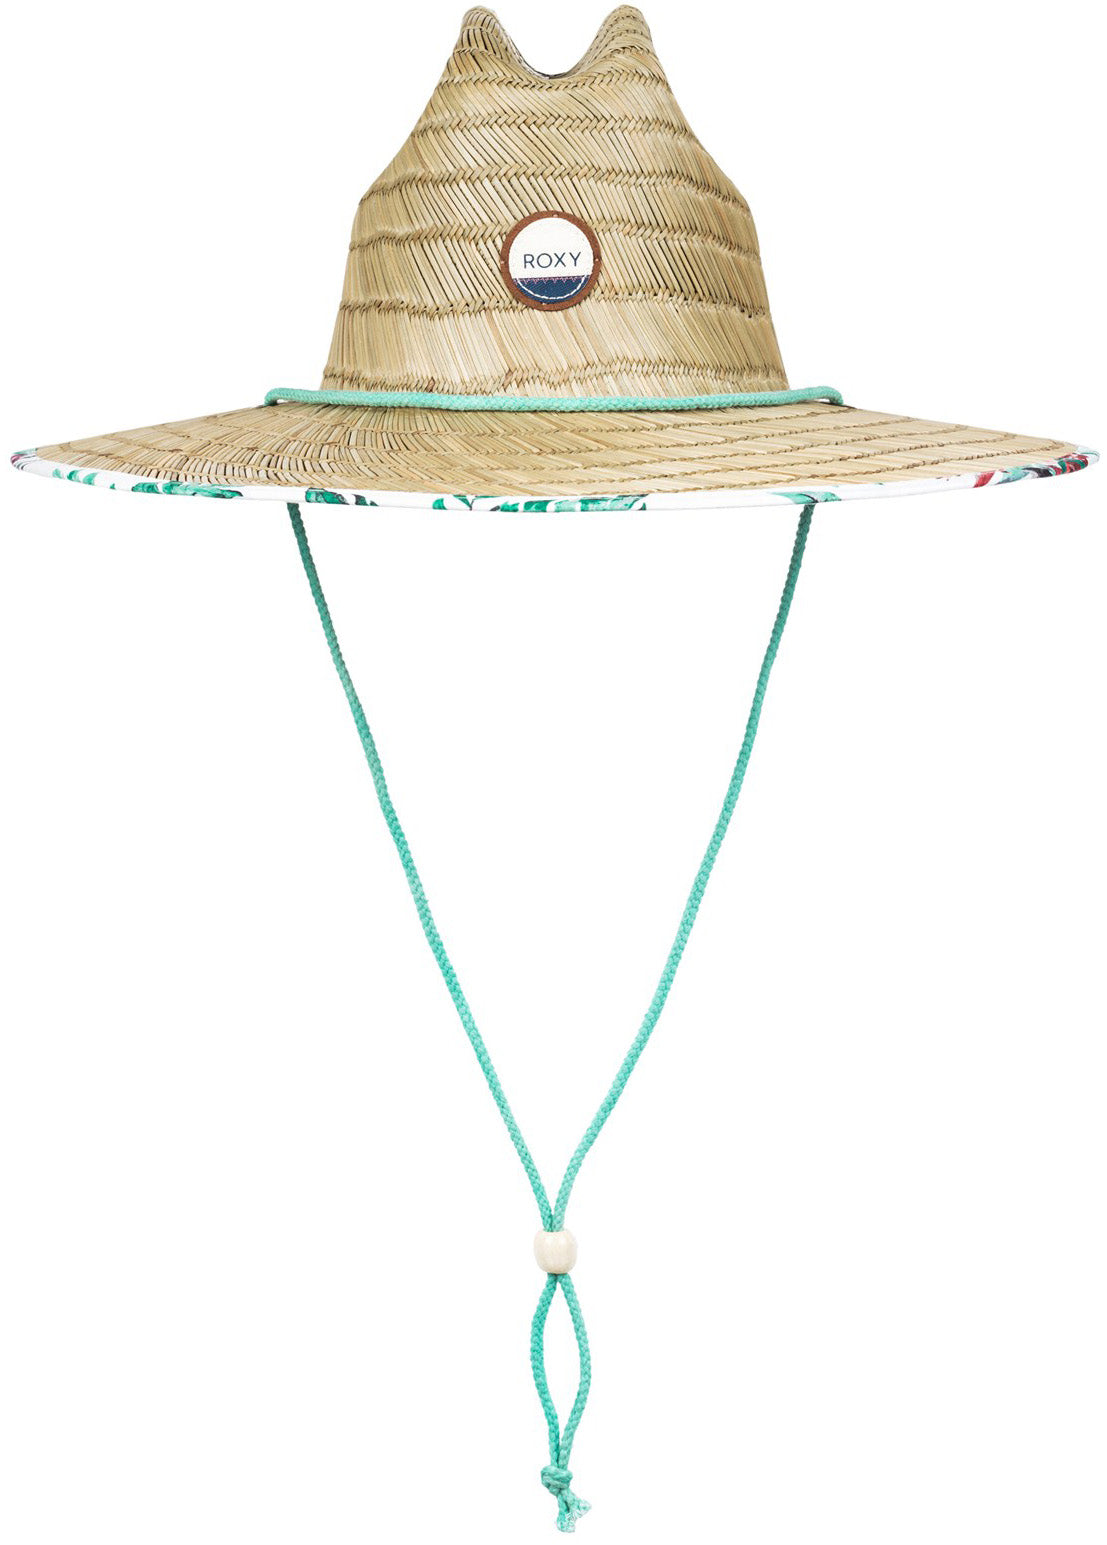 Roxy Surf Summer 2017 Womens Beach Hats Collection